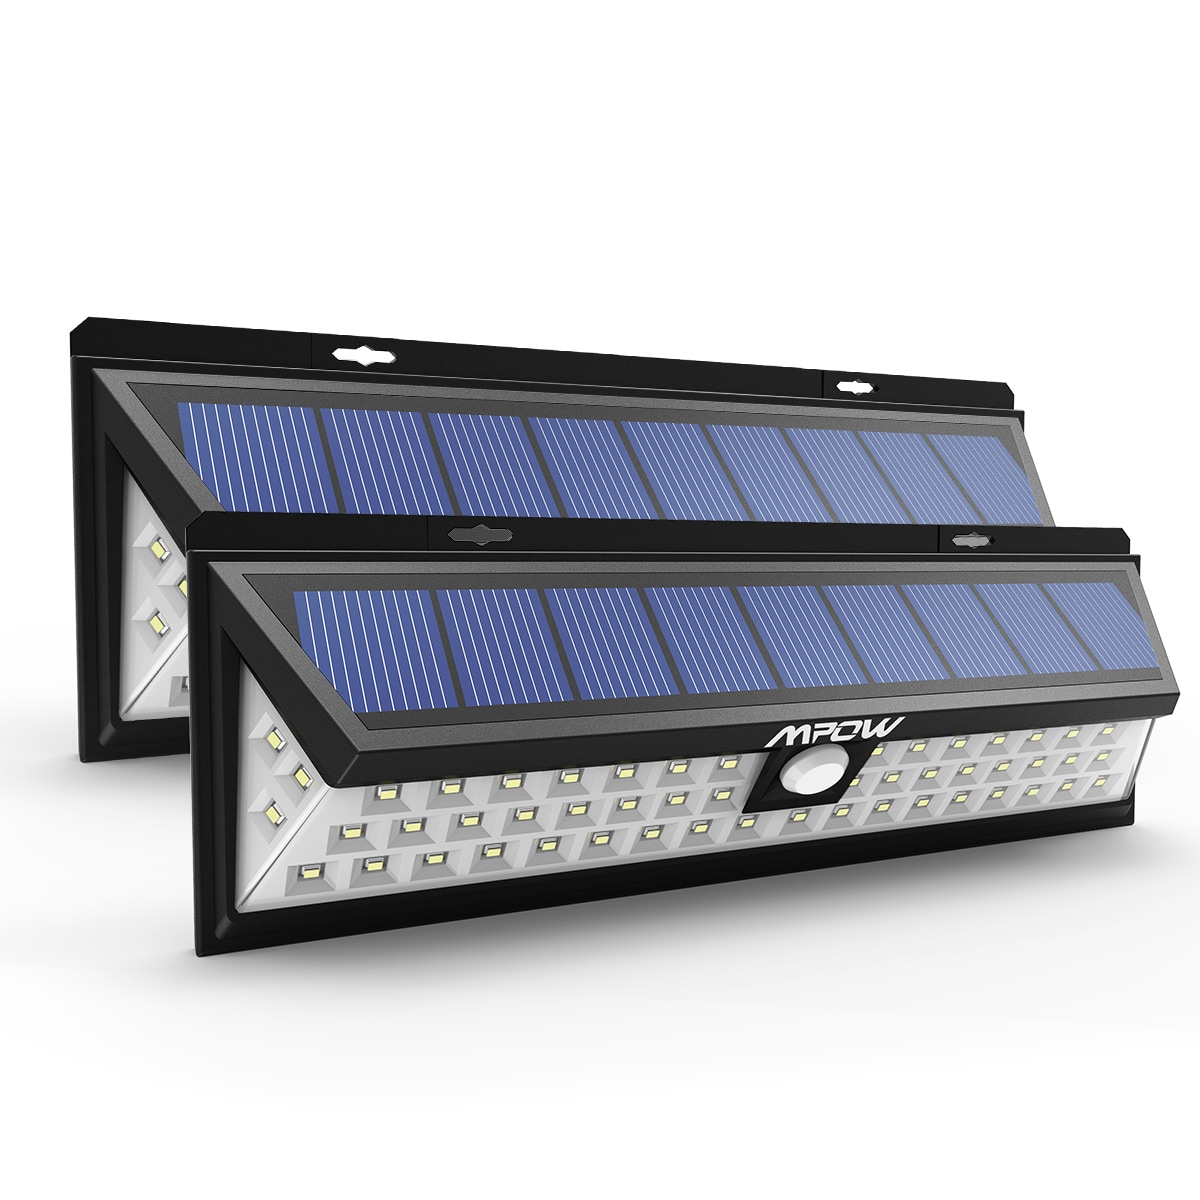 54 Led Solar Lights Outdoor Waterproof With 120 Wide Angle Motion Sensor Patio Lighting 2 Pack